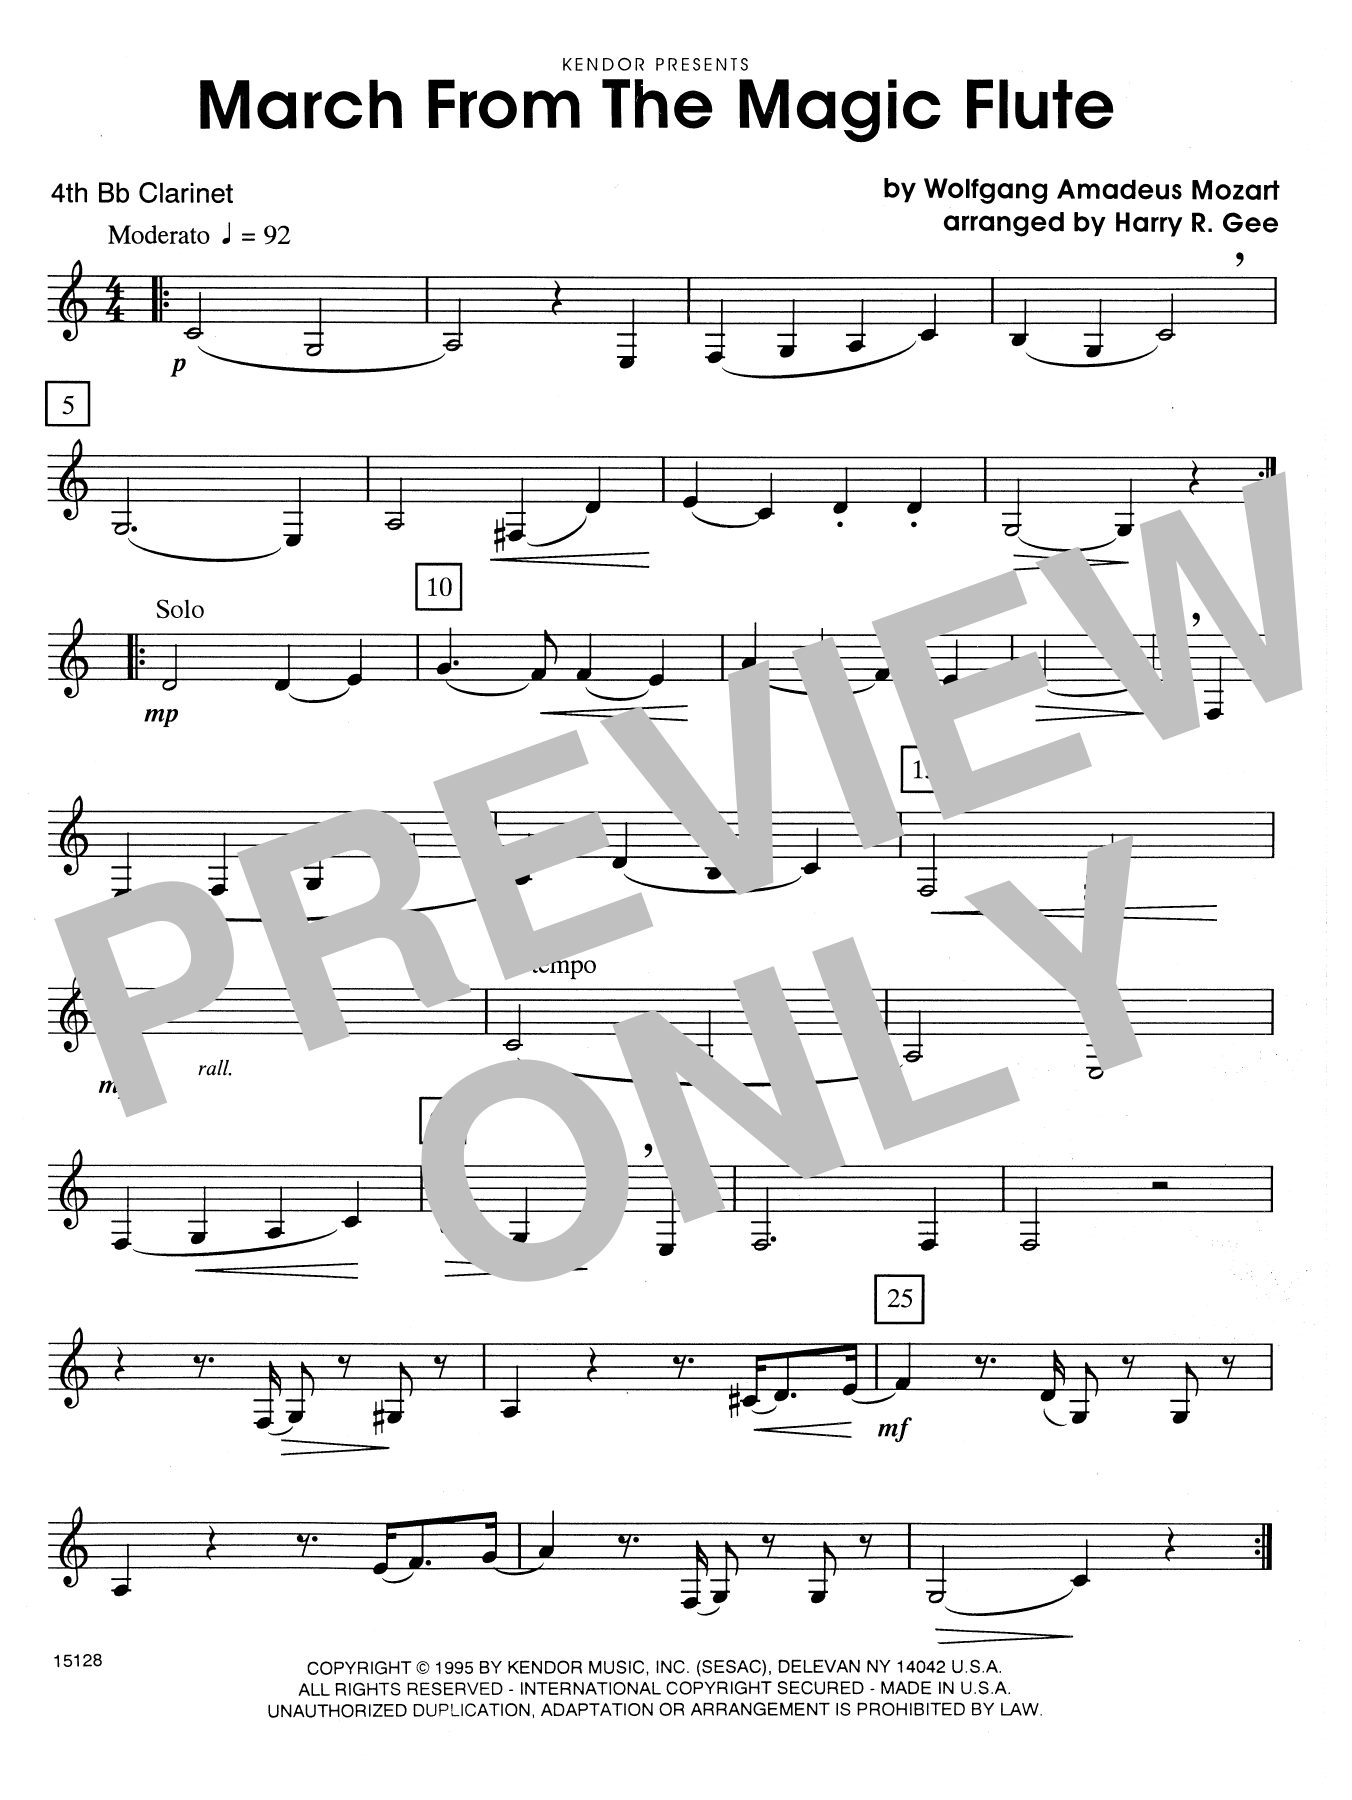 March From The Magic Flute - 4th Bb Clarinet Sheet Music